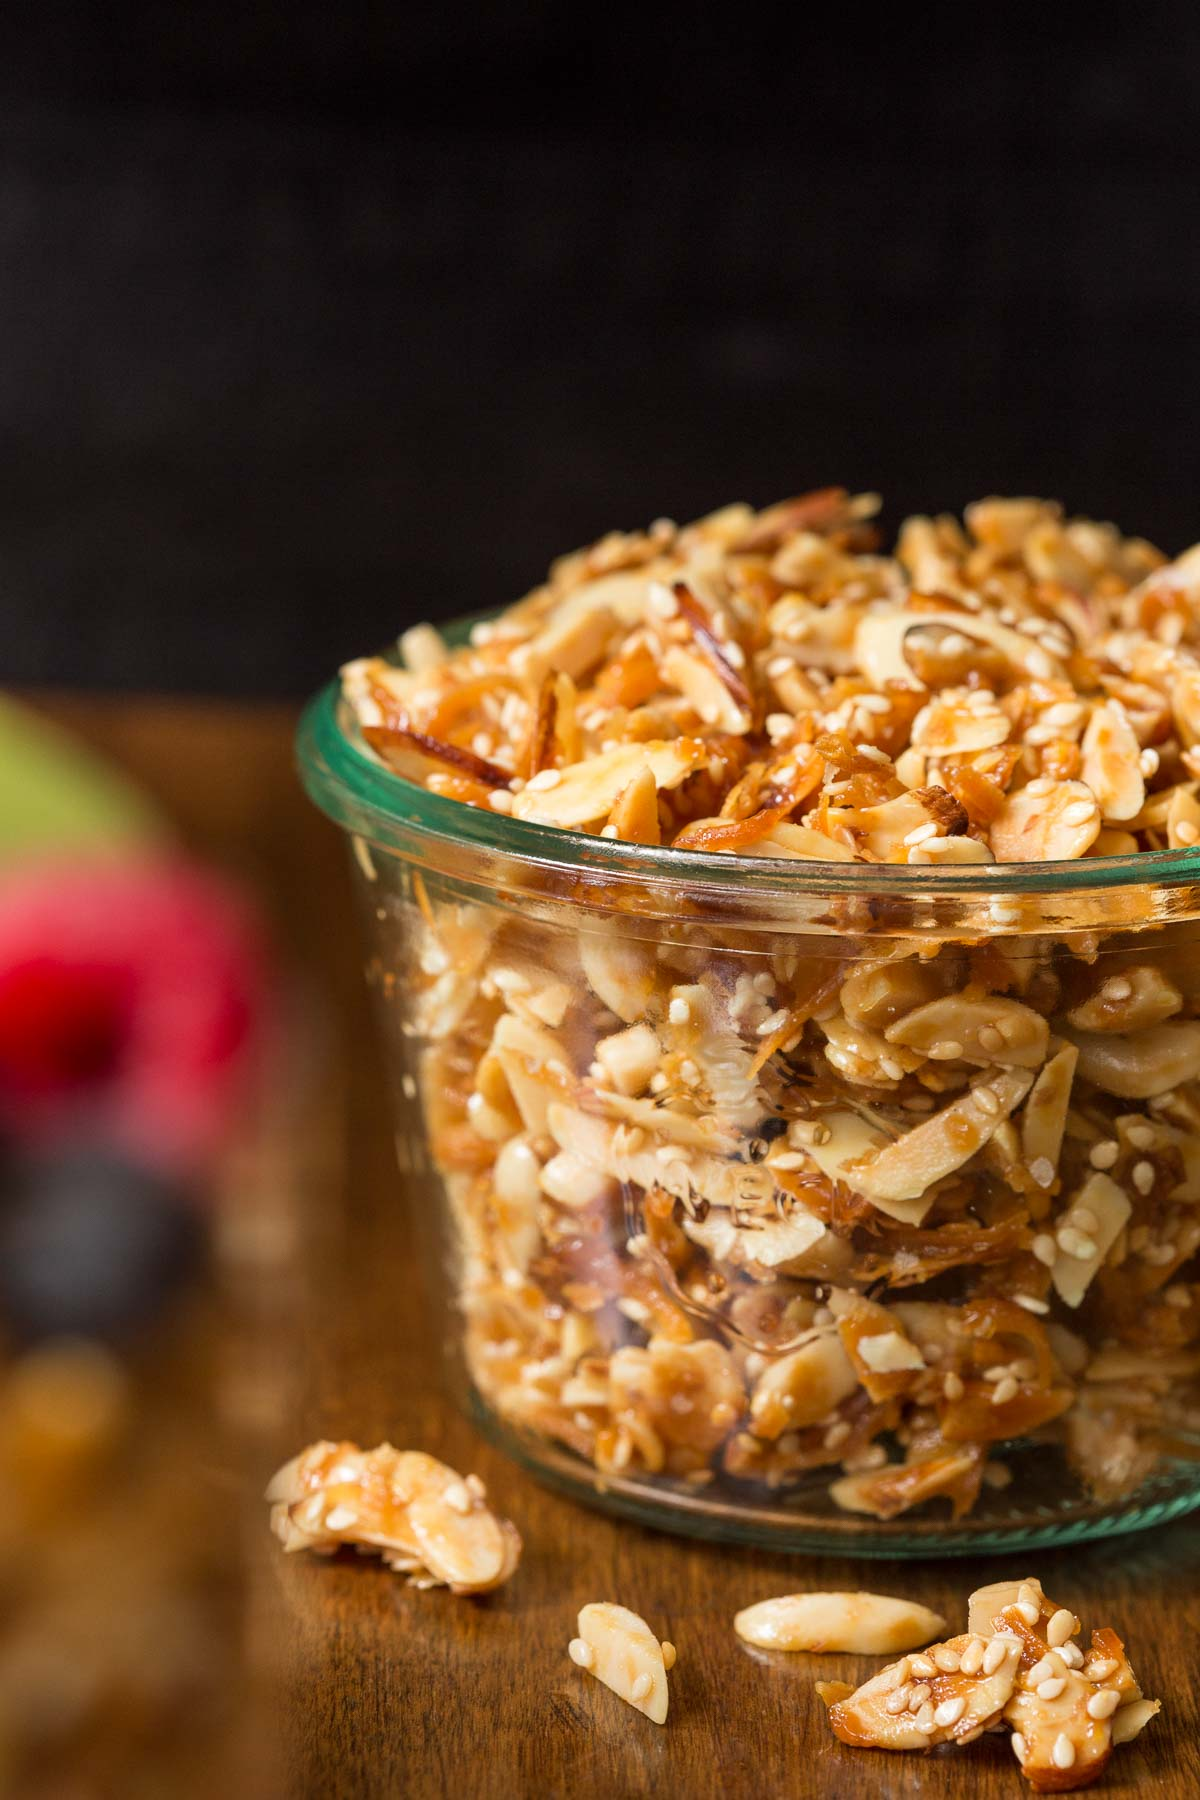 Vertical closeup photo of a Weck jar full of Double Almond Paleo Granola on a wood table with fruit in the background and pieces of the granola in the foreground.